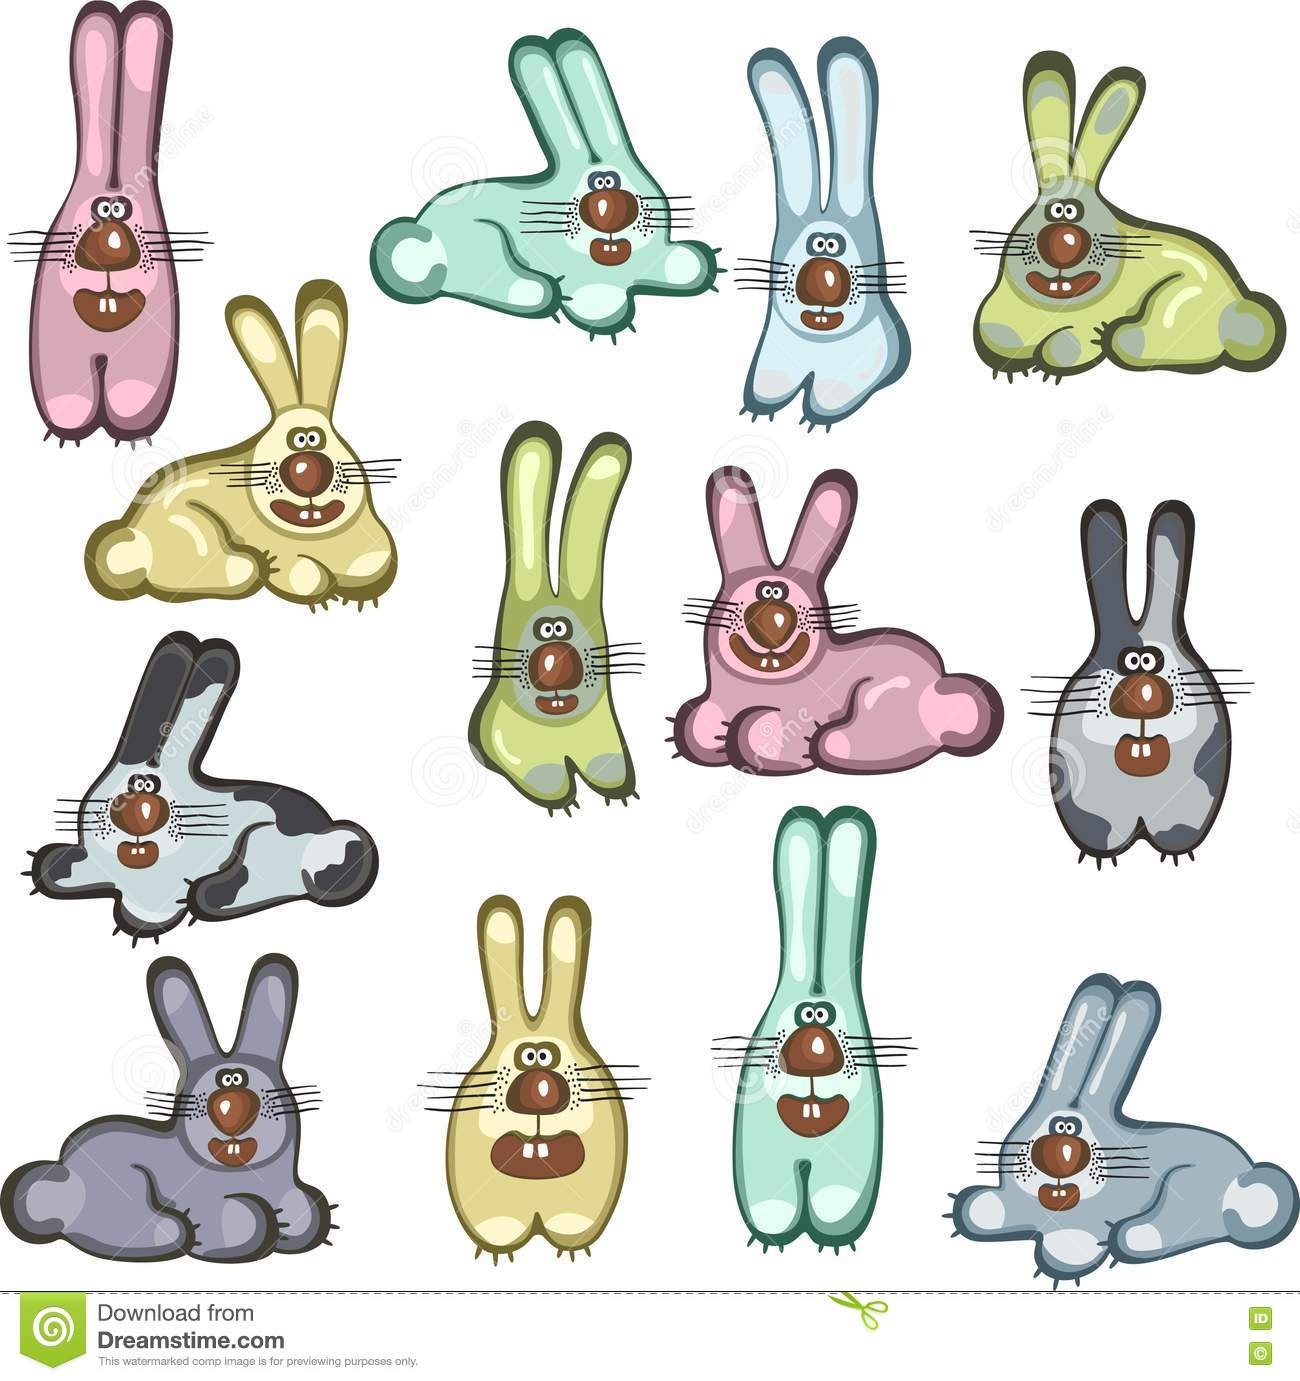 Cartoon Rabbit Images amp Stock Pictures Royalty Free